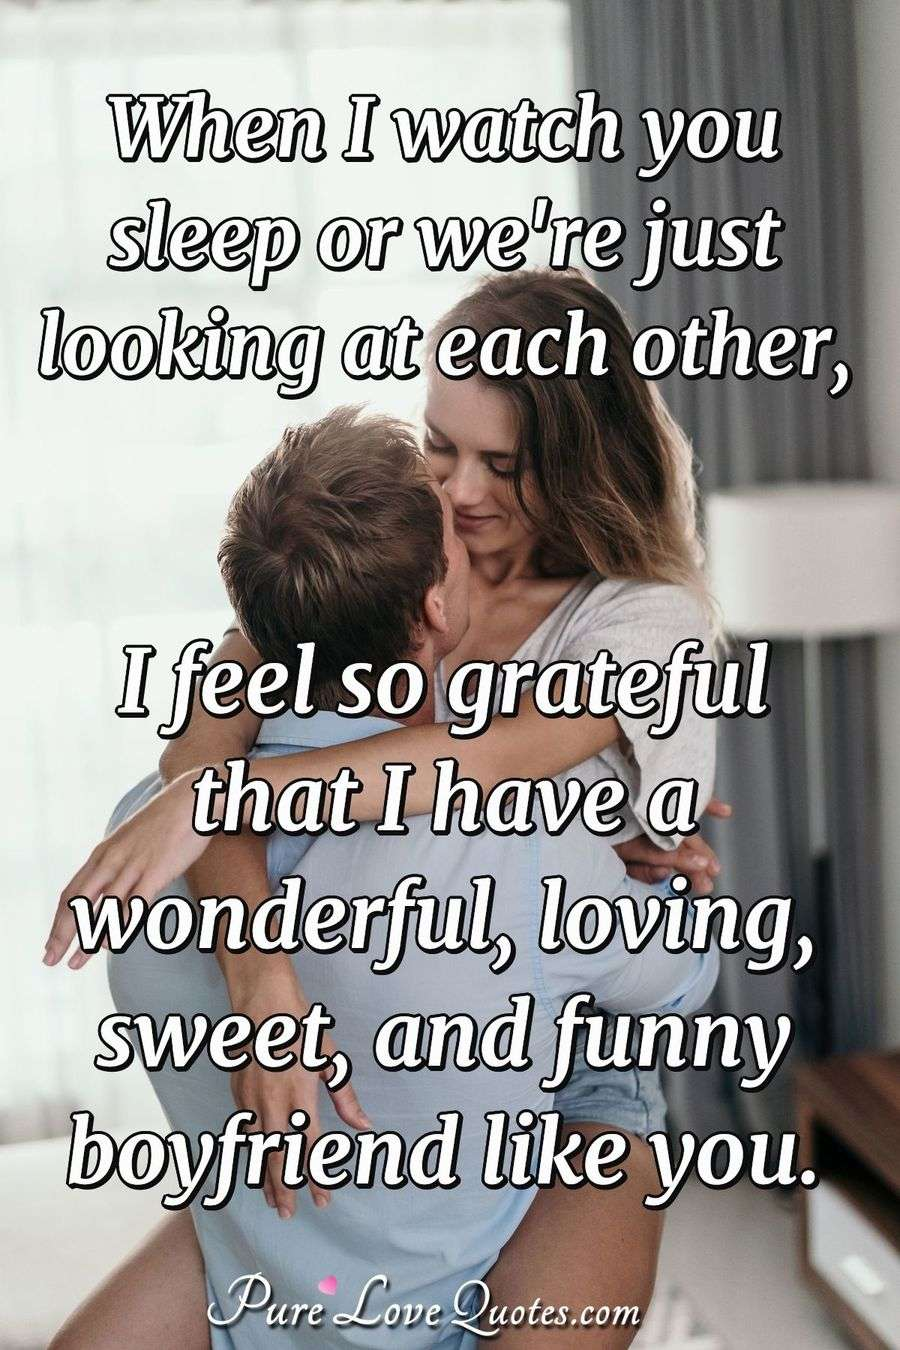 When I watch you sleep or we're just looking at each other, I feel so grateful that I have a wonderful, loving, sweet, and funny boyfriend like you.